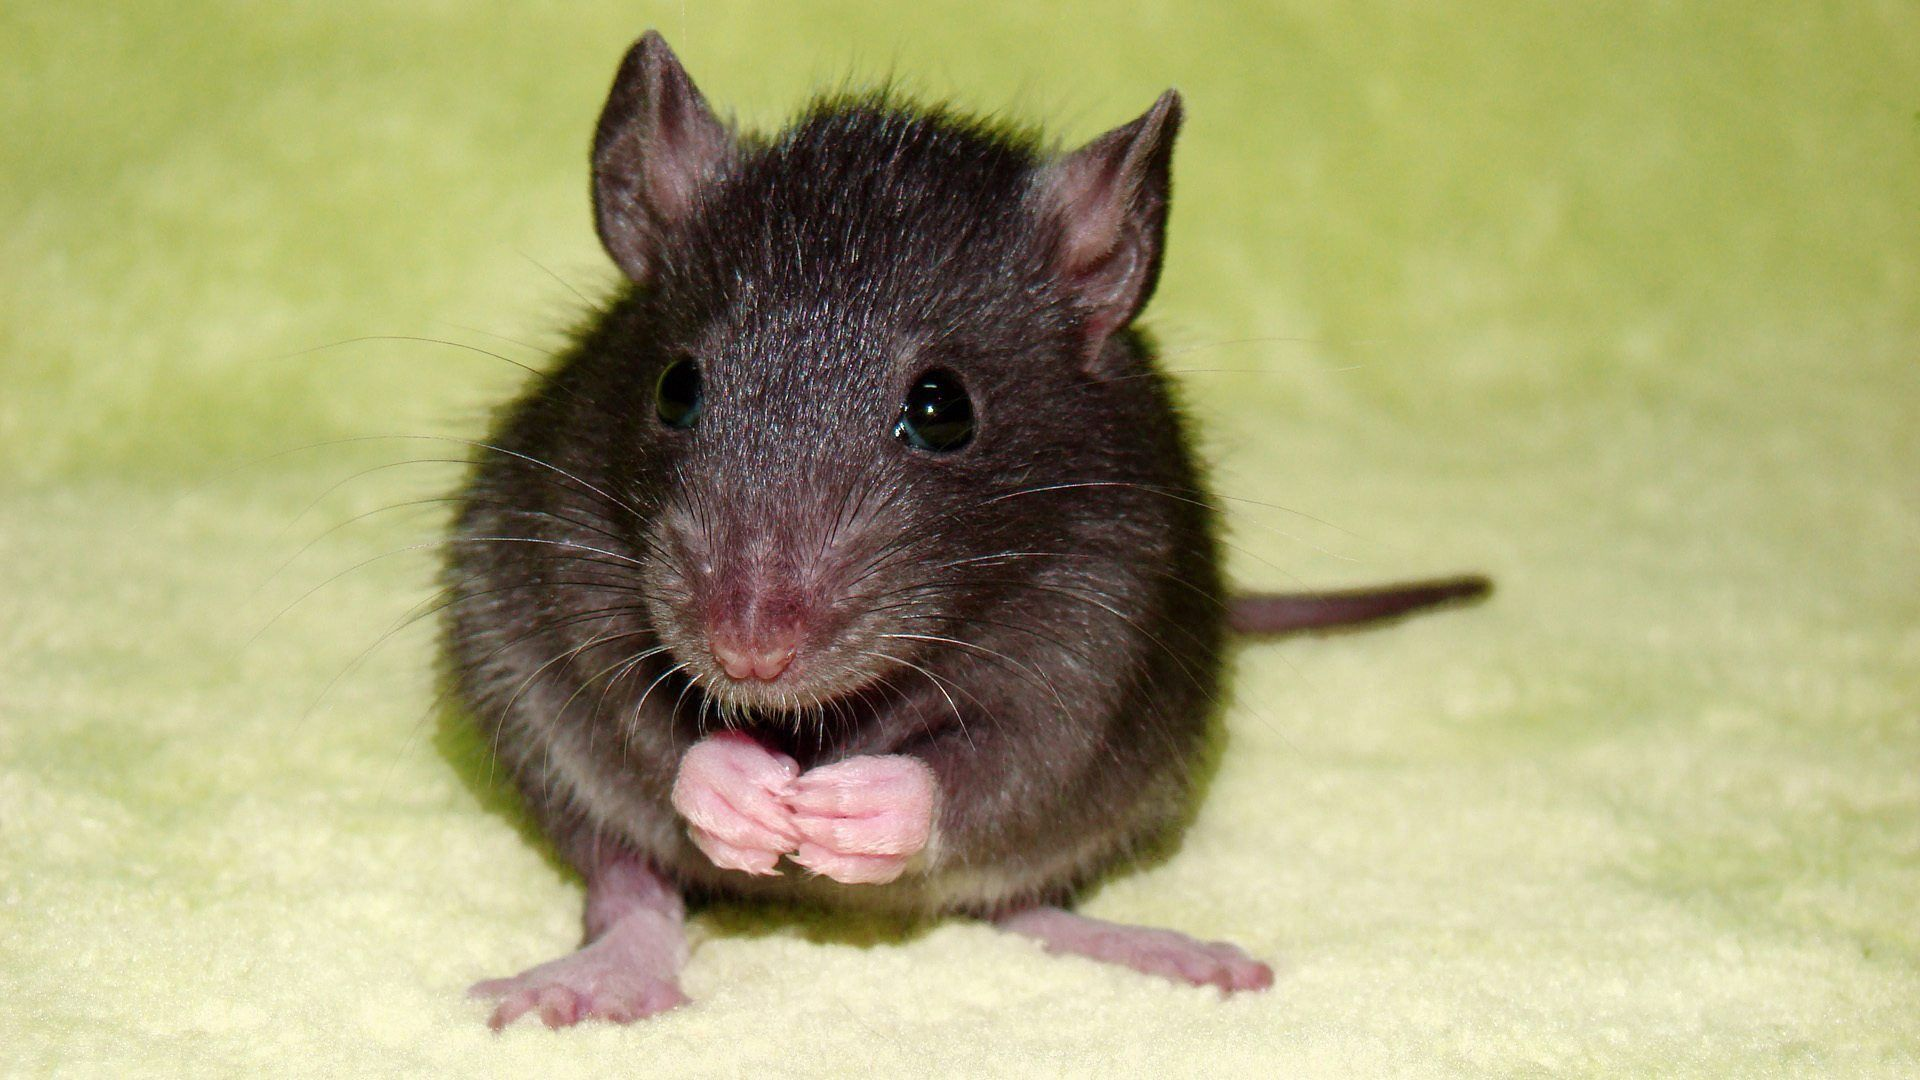 rat   Cute Rat in green color background picture   Places to Visit ...